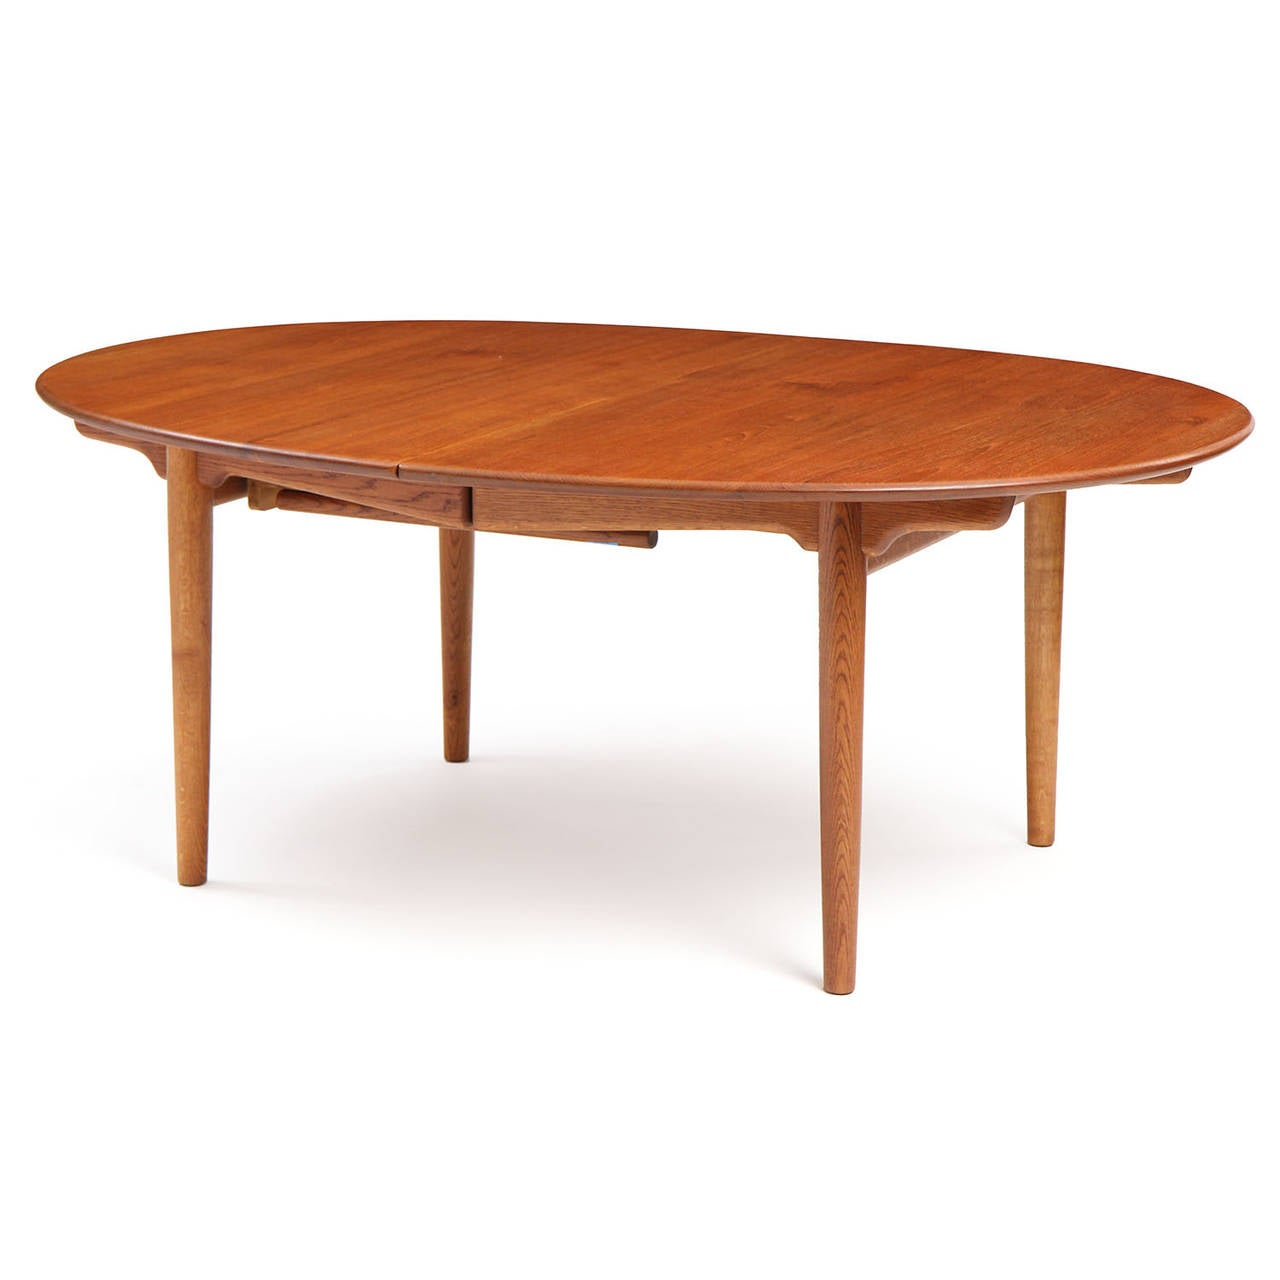 An oval extension dining table with tapered dowel legs and cloud lift stretchers. Three 25